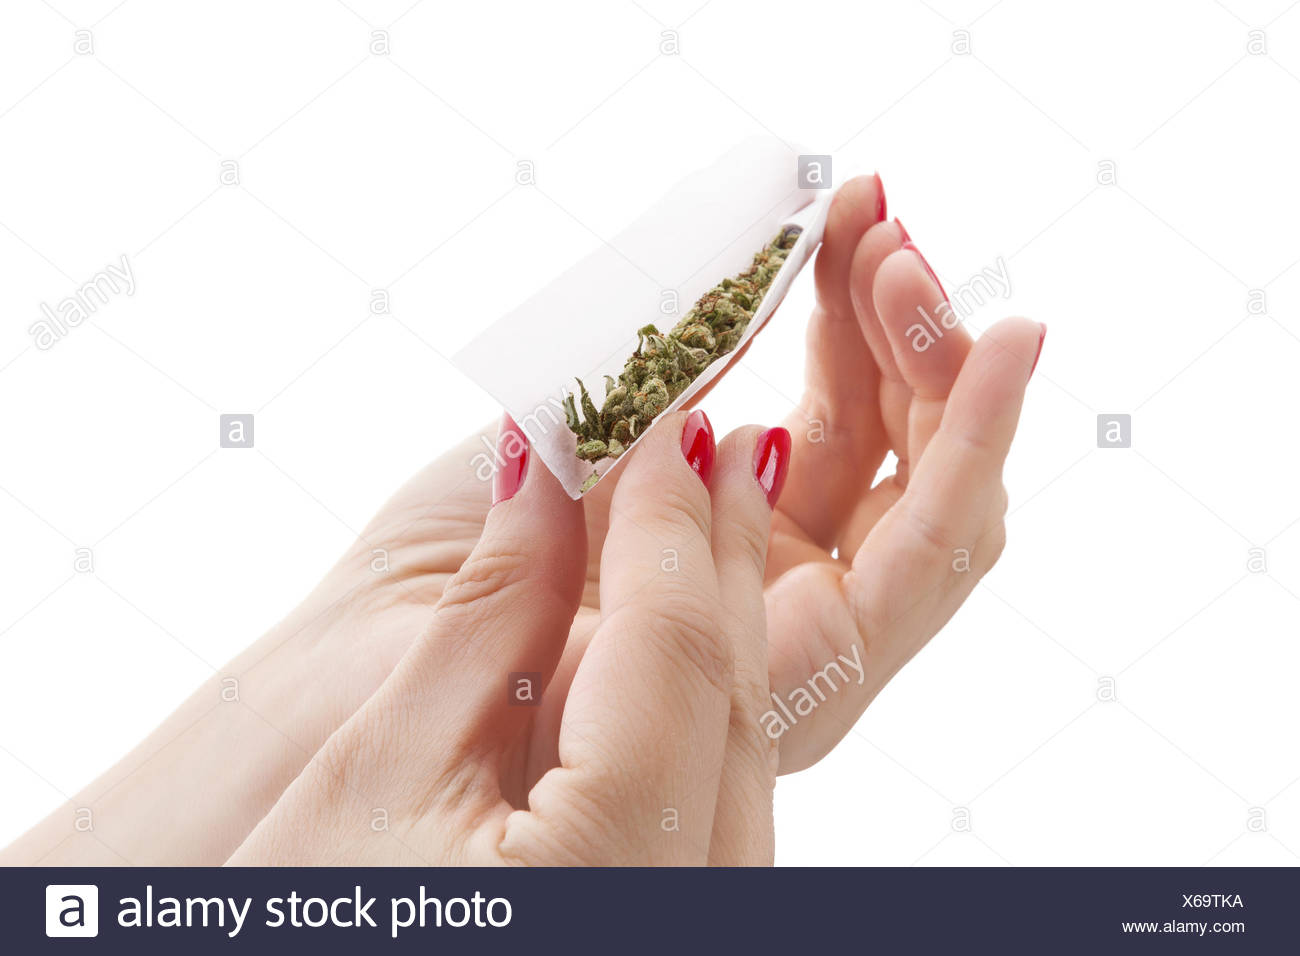 Preparing a cannabis joint. - Stock Image